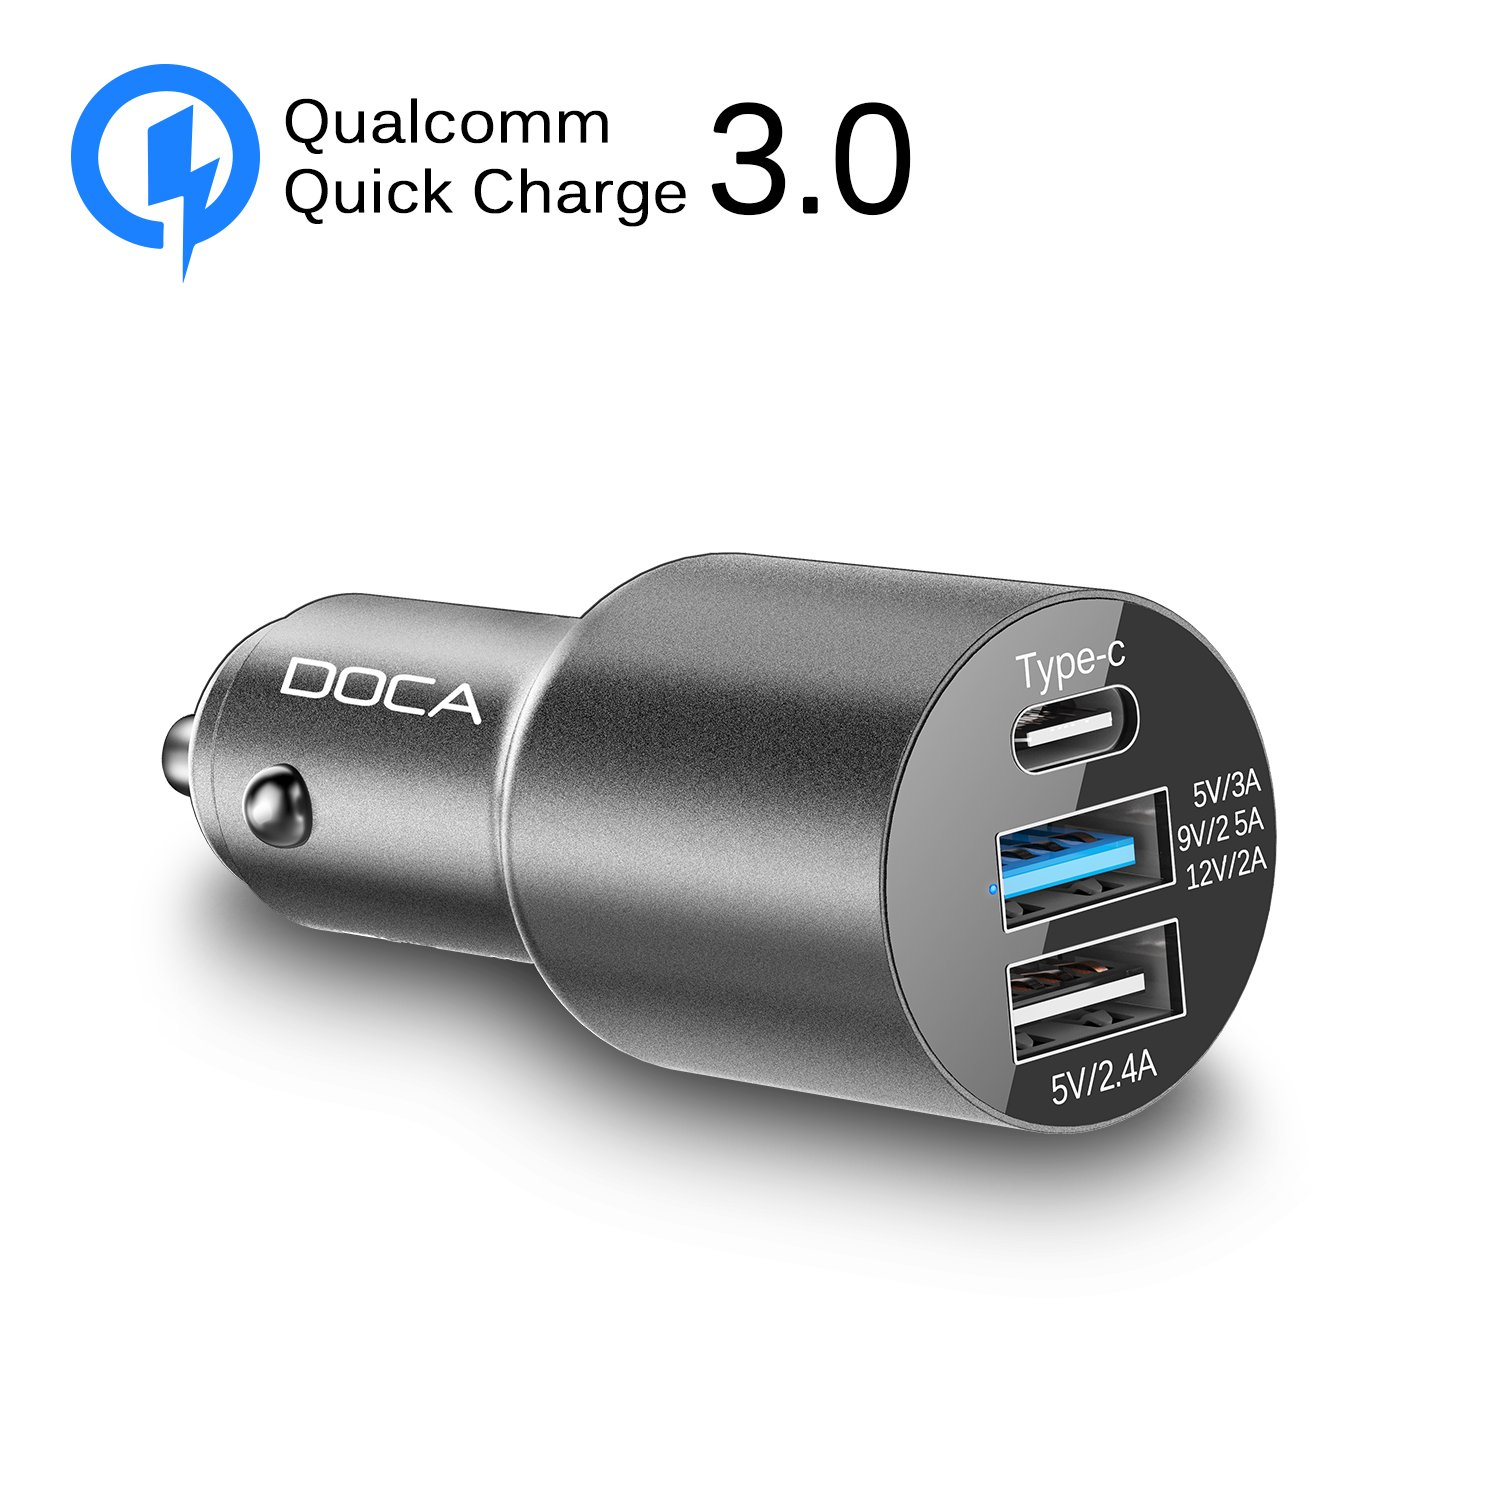 DOCA Car Charger, Quick Charger 3.0 Type-C & Dual USB Port 3A 5-24V Fast Car Charger Adapter for iPhone,iPad,Samsung Galaxy, HTC,LG and More IOS & Android Devices